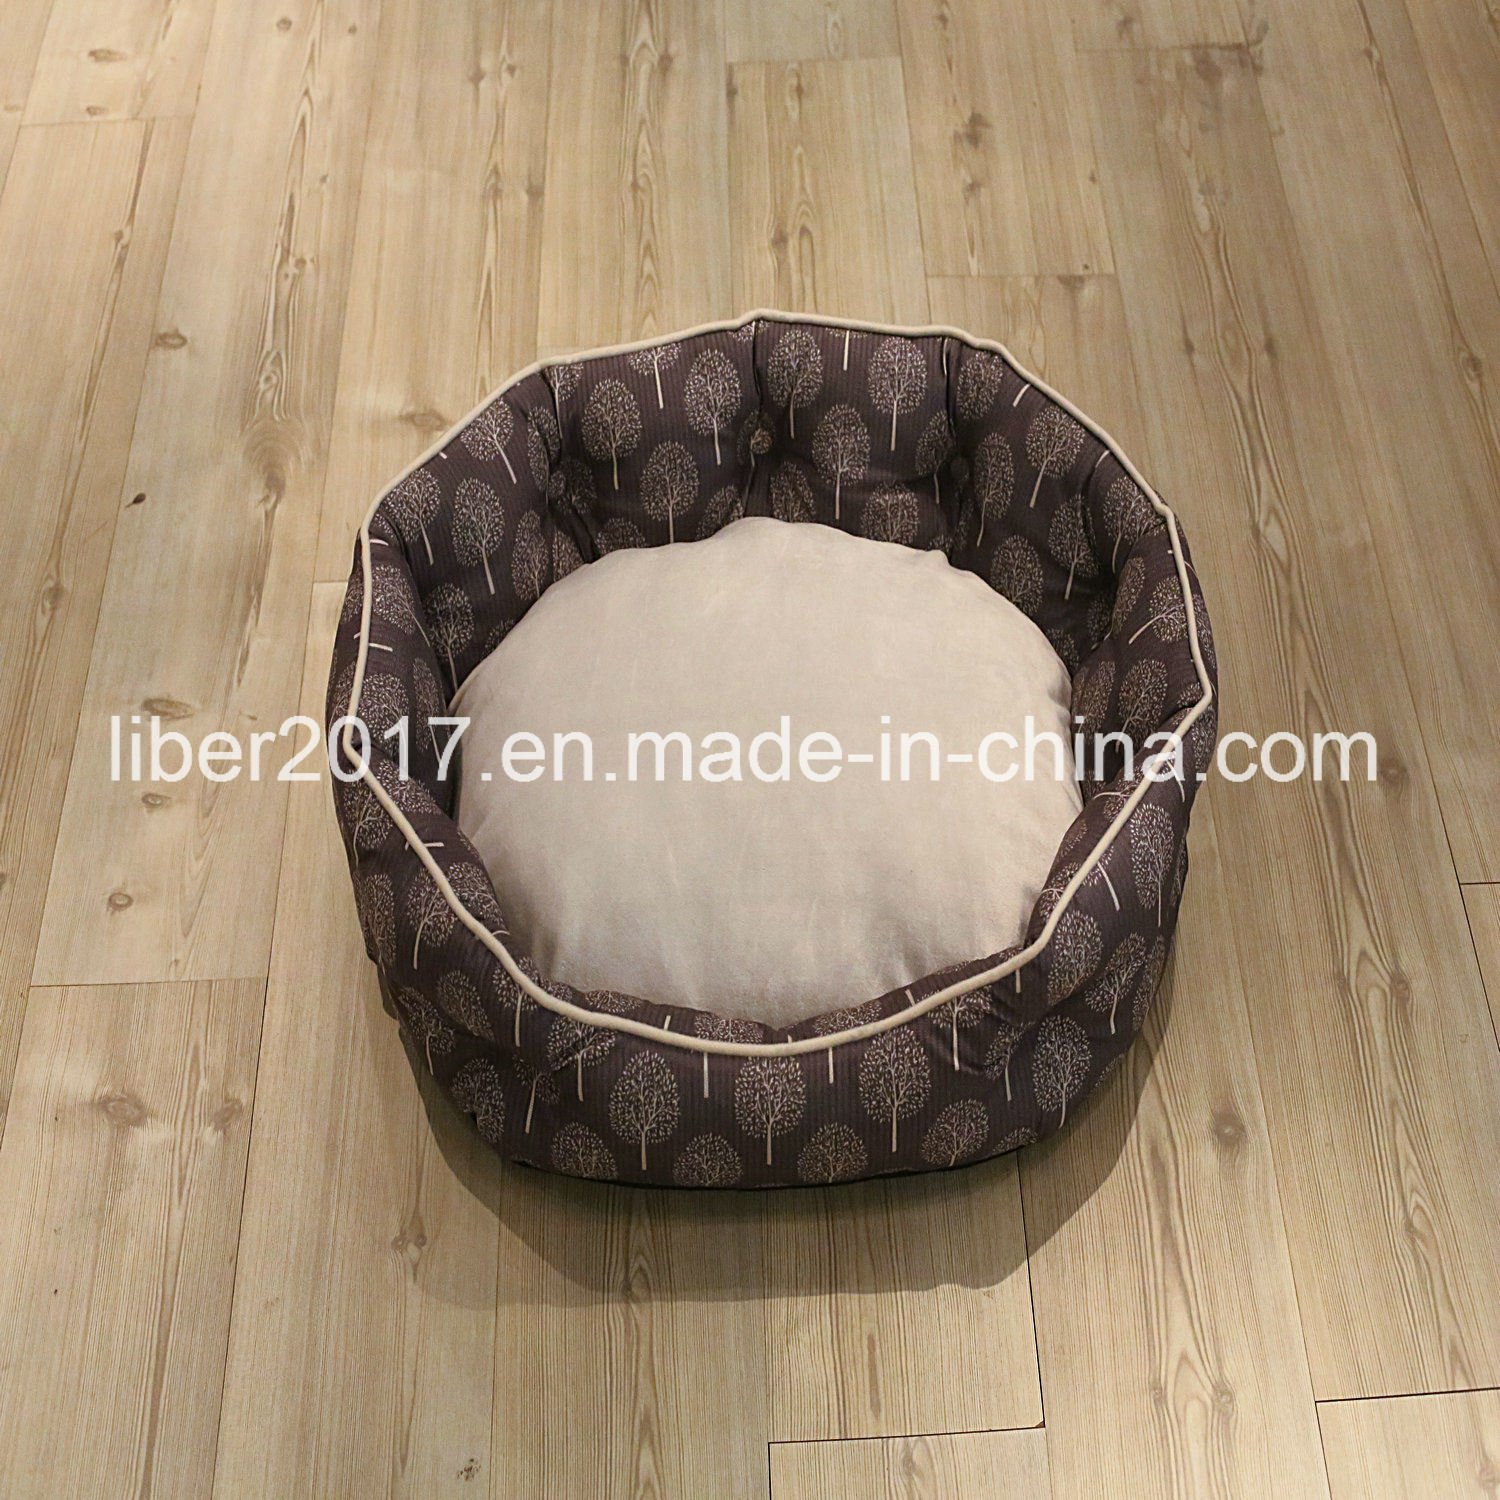 [Hot Item] Luxury Dog Sofa Bed Fashion Design Dog furniture Pet Accessories